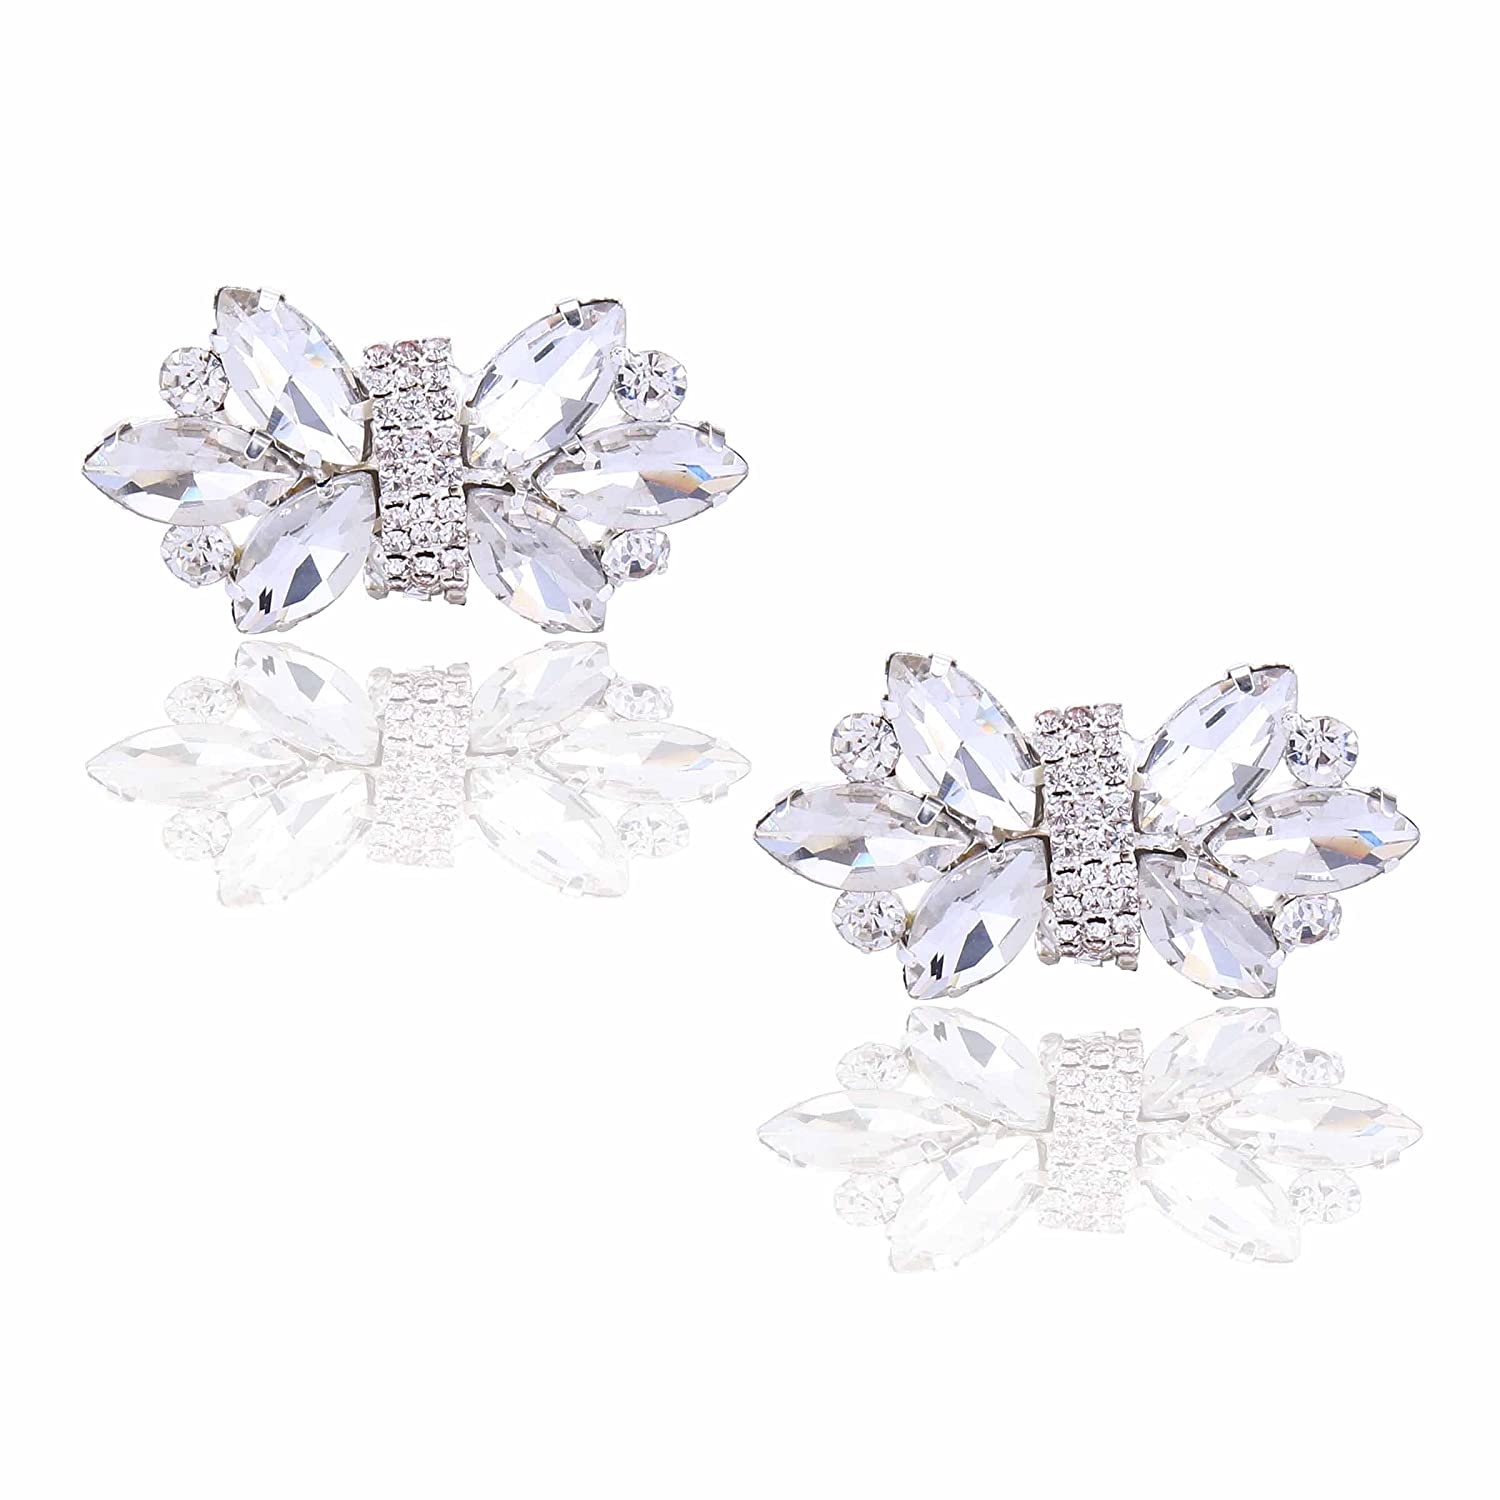 Santfe Clear Crystal Shoe Clips Decoration Wedding Party Shoes Accessories Rhinestone Shoe Charm Buckle Clip